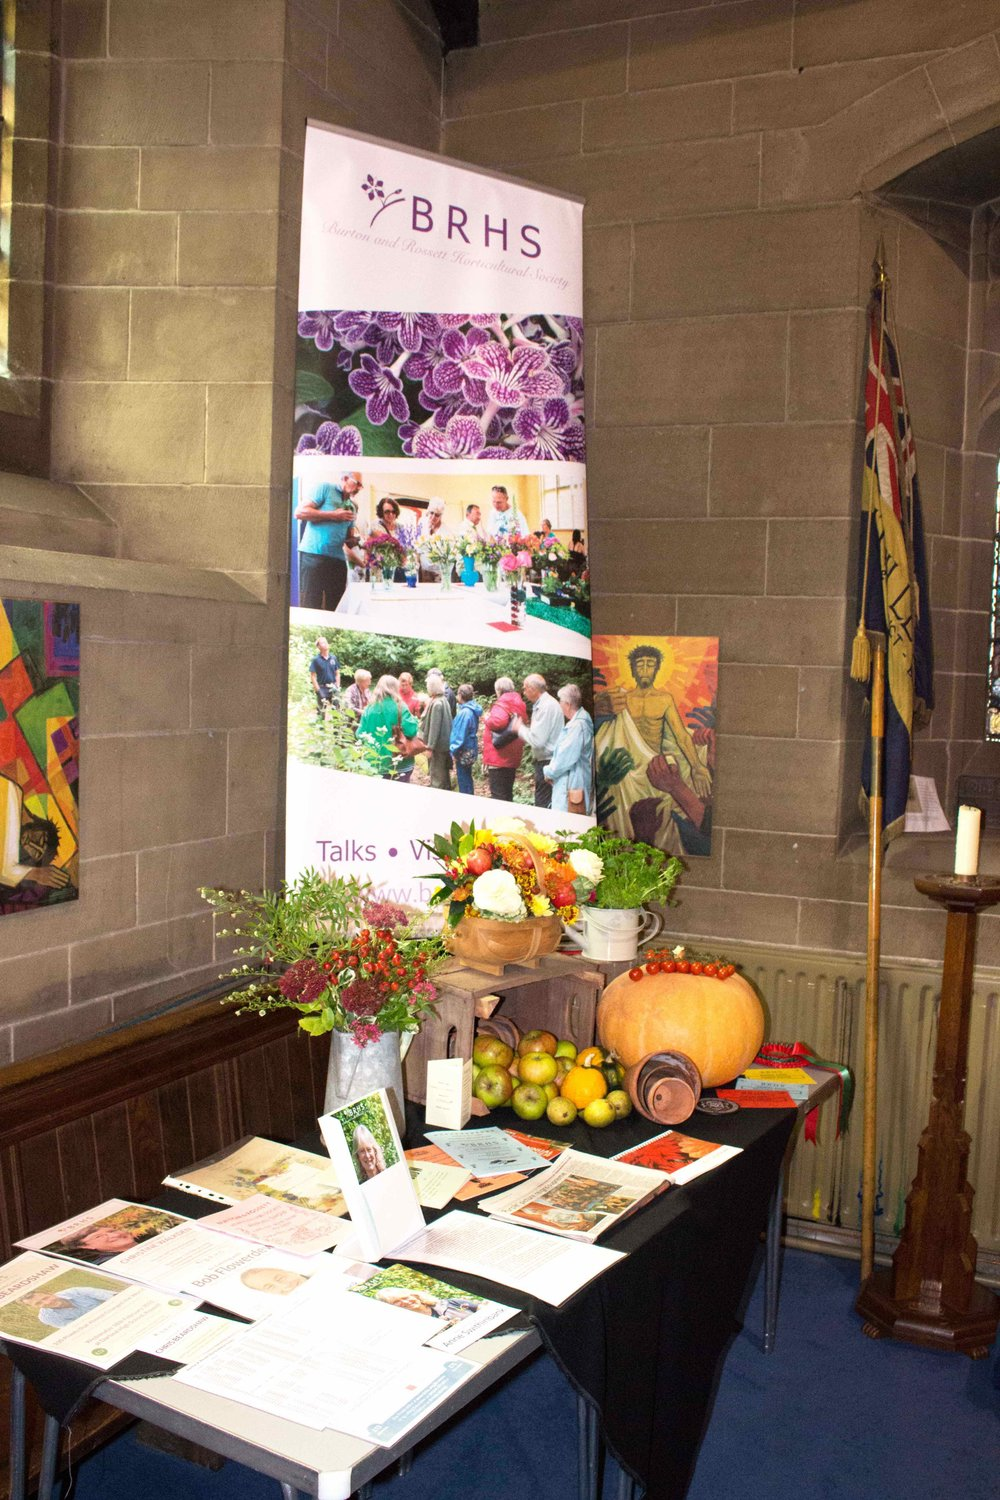 BRHS display in the Church